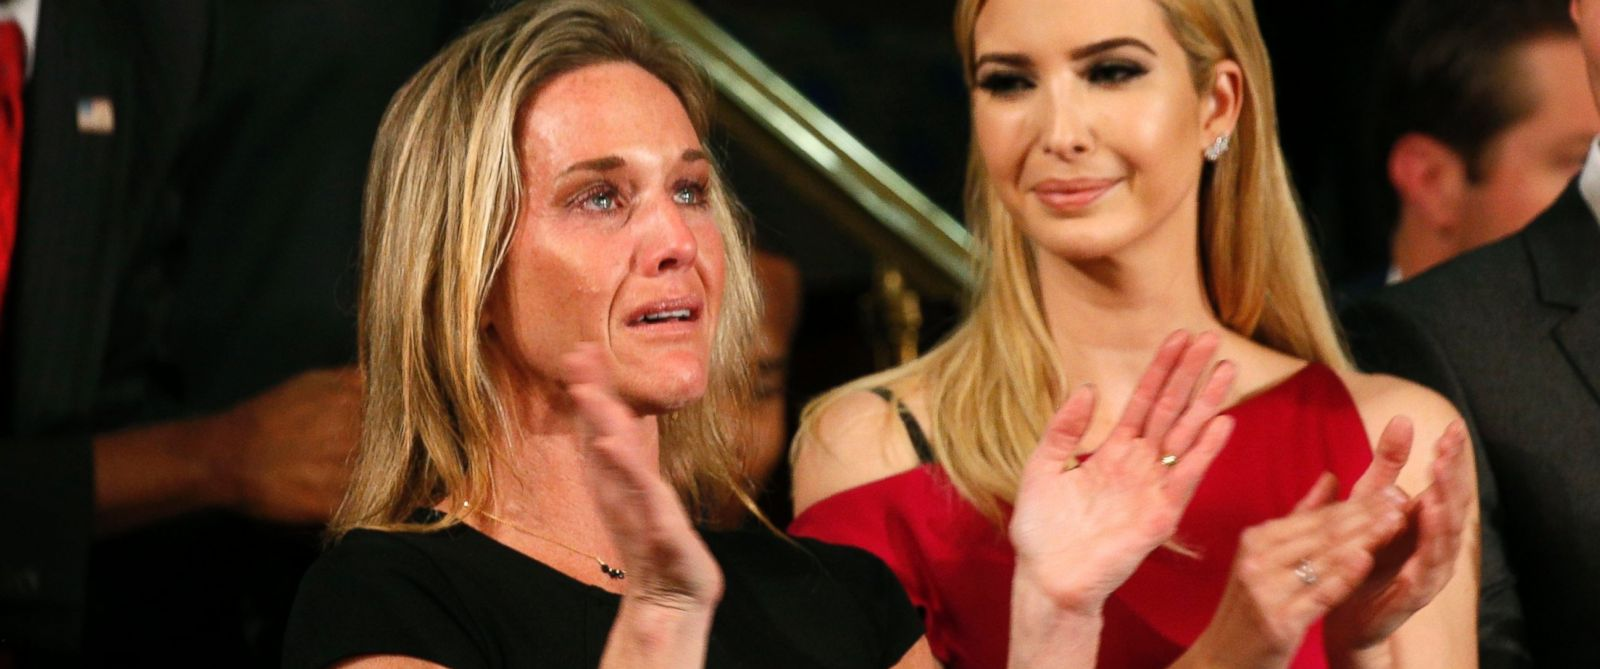 """PHOTO: Carryn Owens, widow of Senior Chief Petty Officer William """"Ryan"""" Owens, applauds after being mentioned by President Trump during his address to a joint session of the U.S. Congress on Feb. 28, 2017 in Washington, DC."""